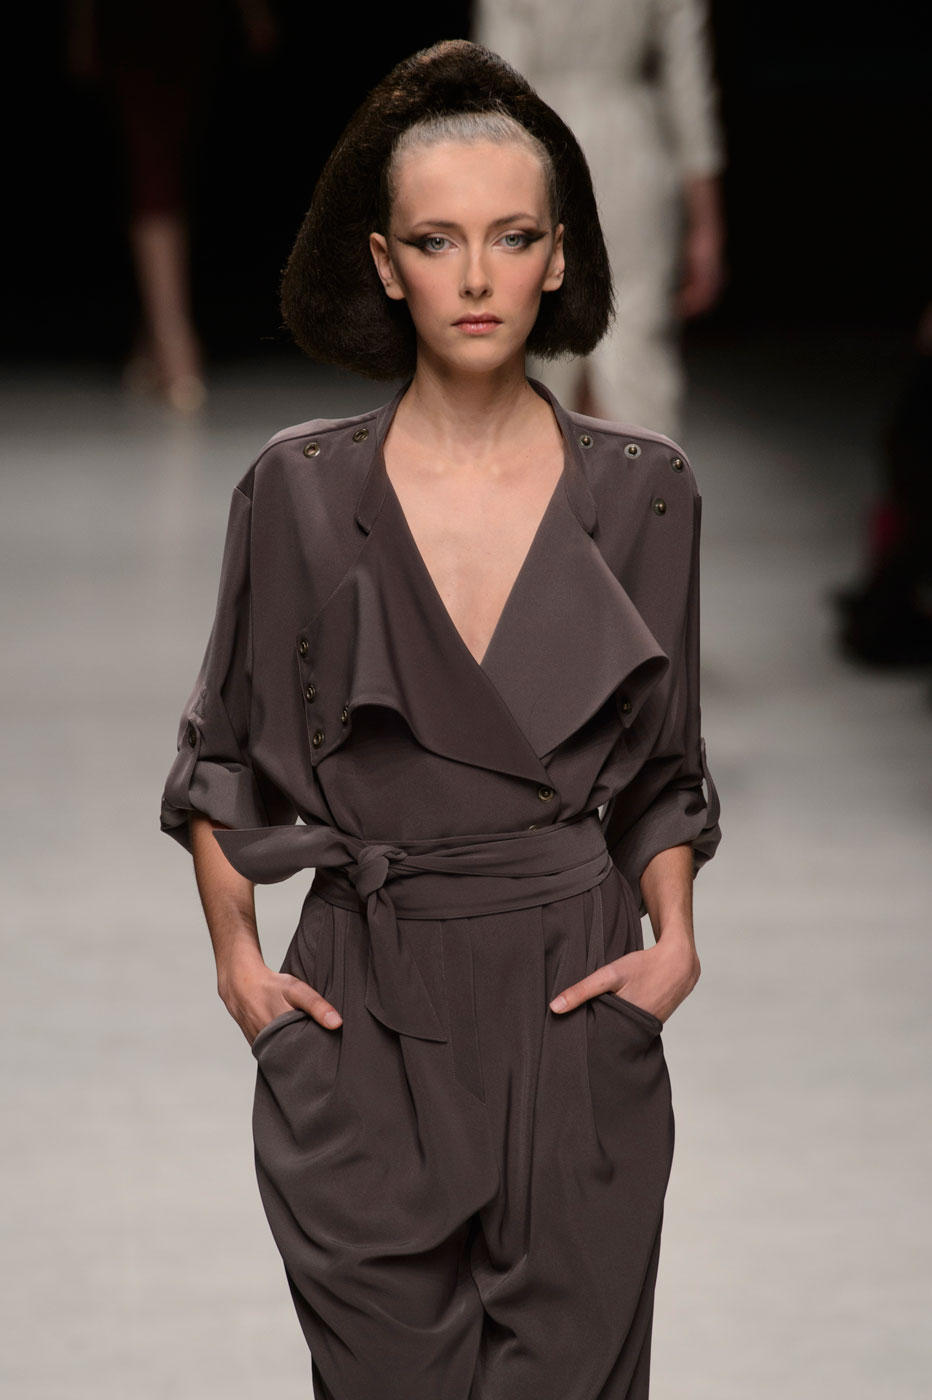 Julien-Fournie-Prive-fashion-runway-show-haute-couture-paris-spring-2015-the-impression-05